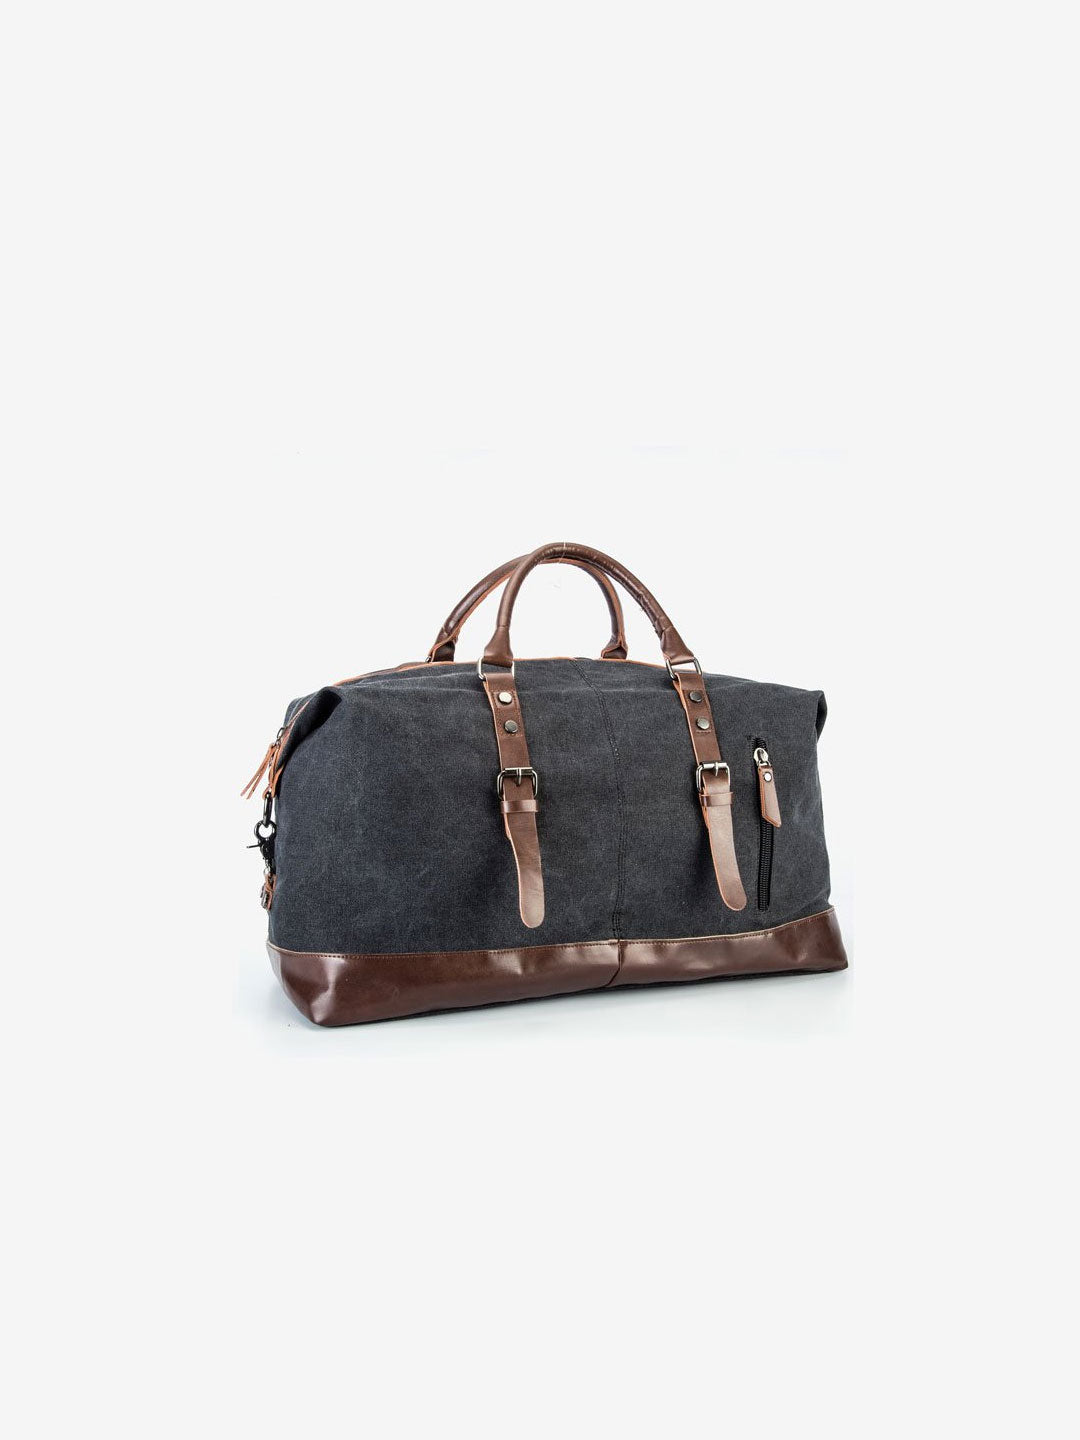 The Canvas Weekender Bag in Onyx